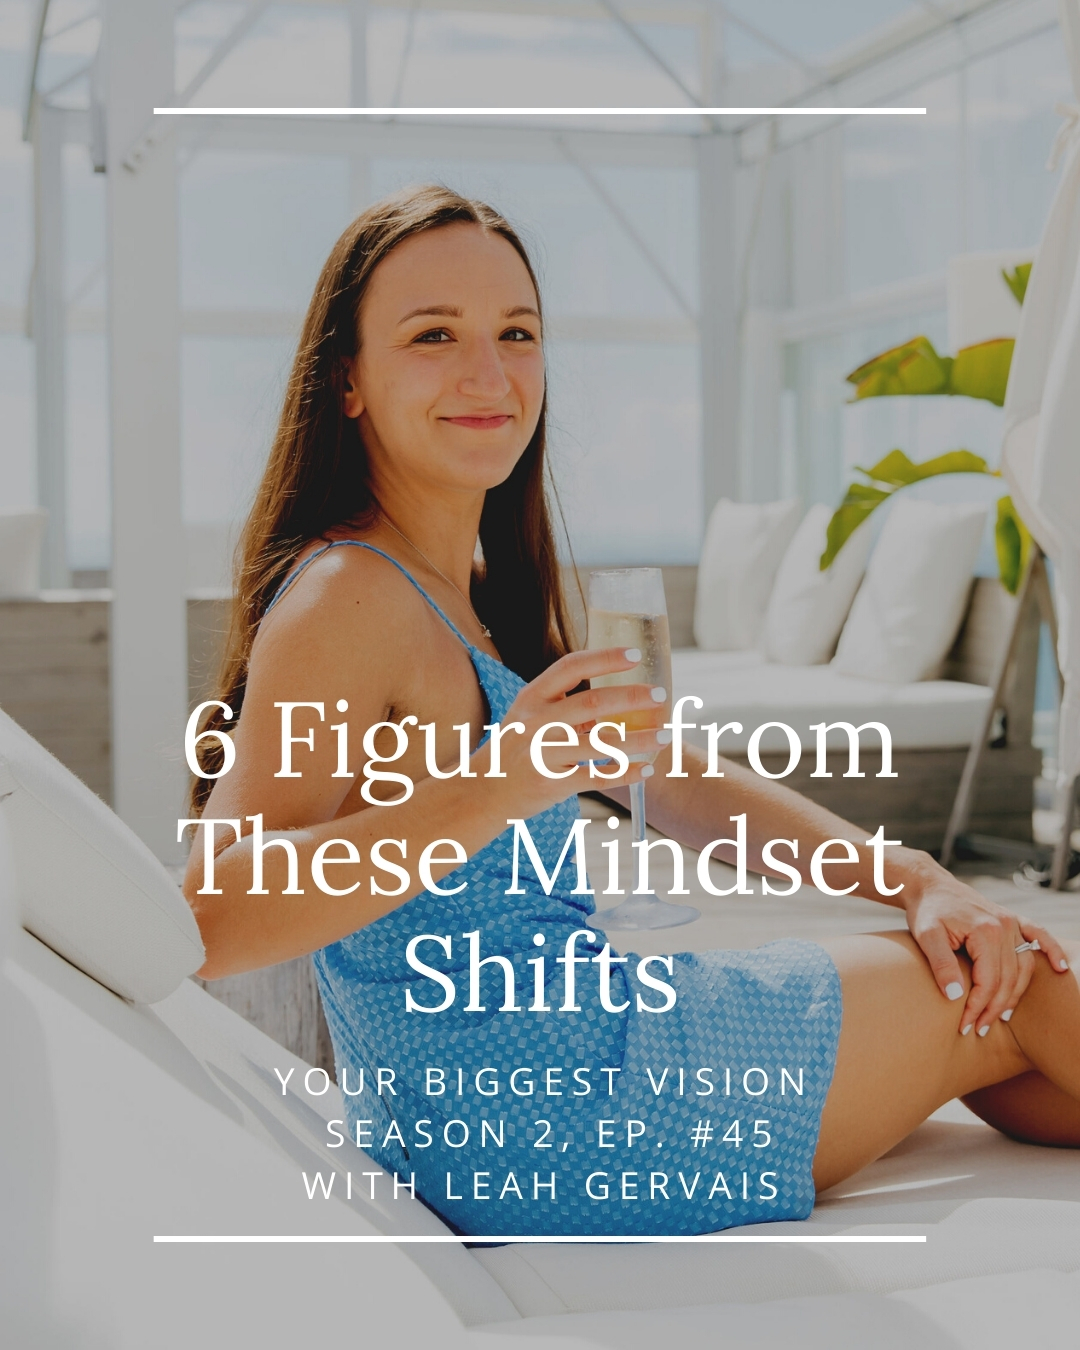 Today I am sharing three of the most powerful mindset shifts for any entrepreneur trying to get to 6 figures.